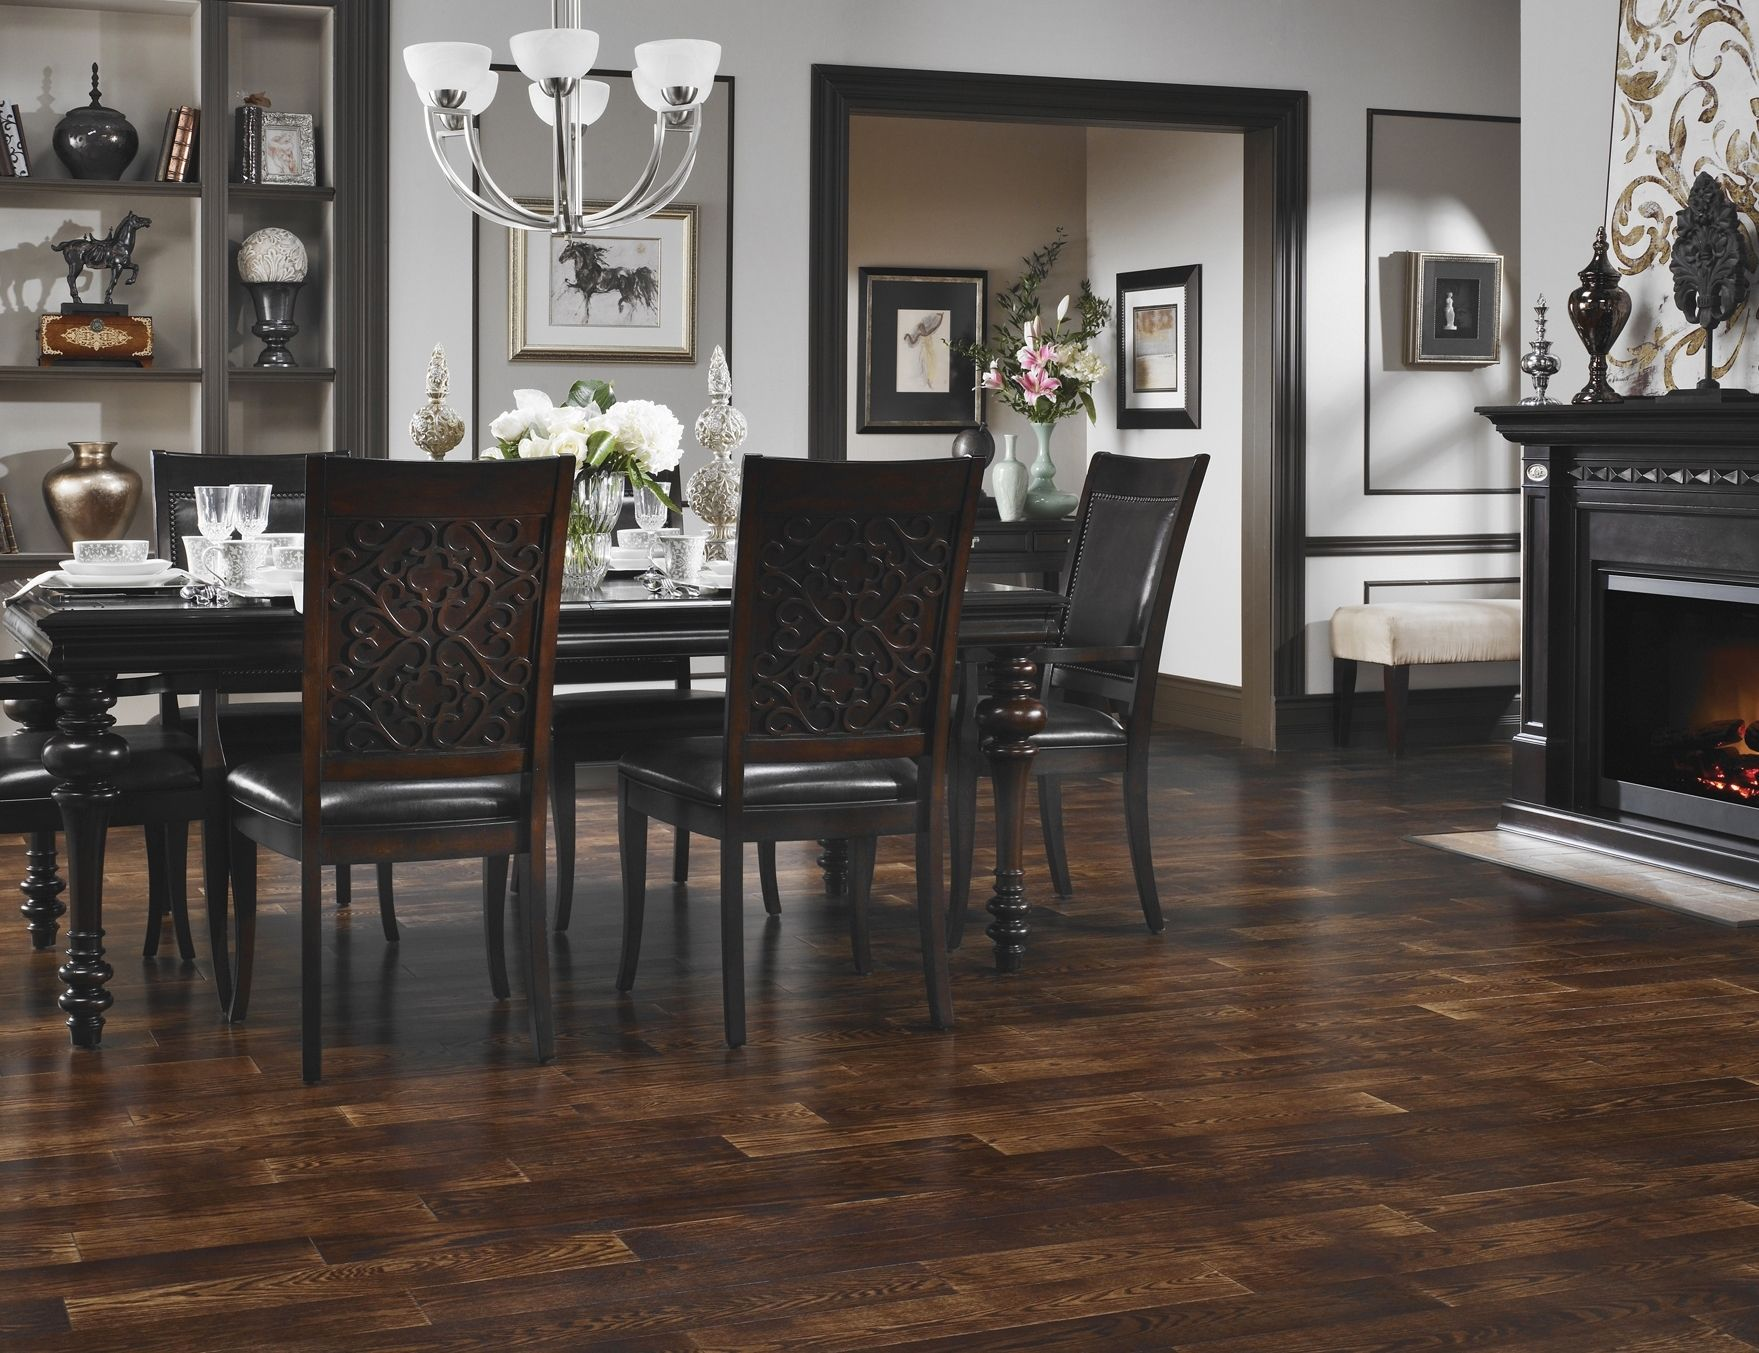 Wondrous Black Wooden Armless Dining Chairs Set On Subway Dark Hardwood Floors Added Chrome Chandelier As Modern Lighting In Room Areas